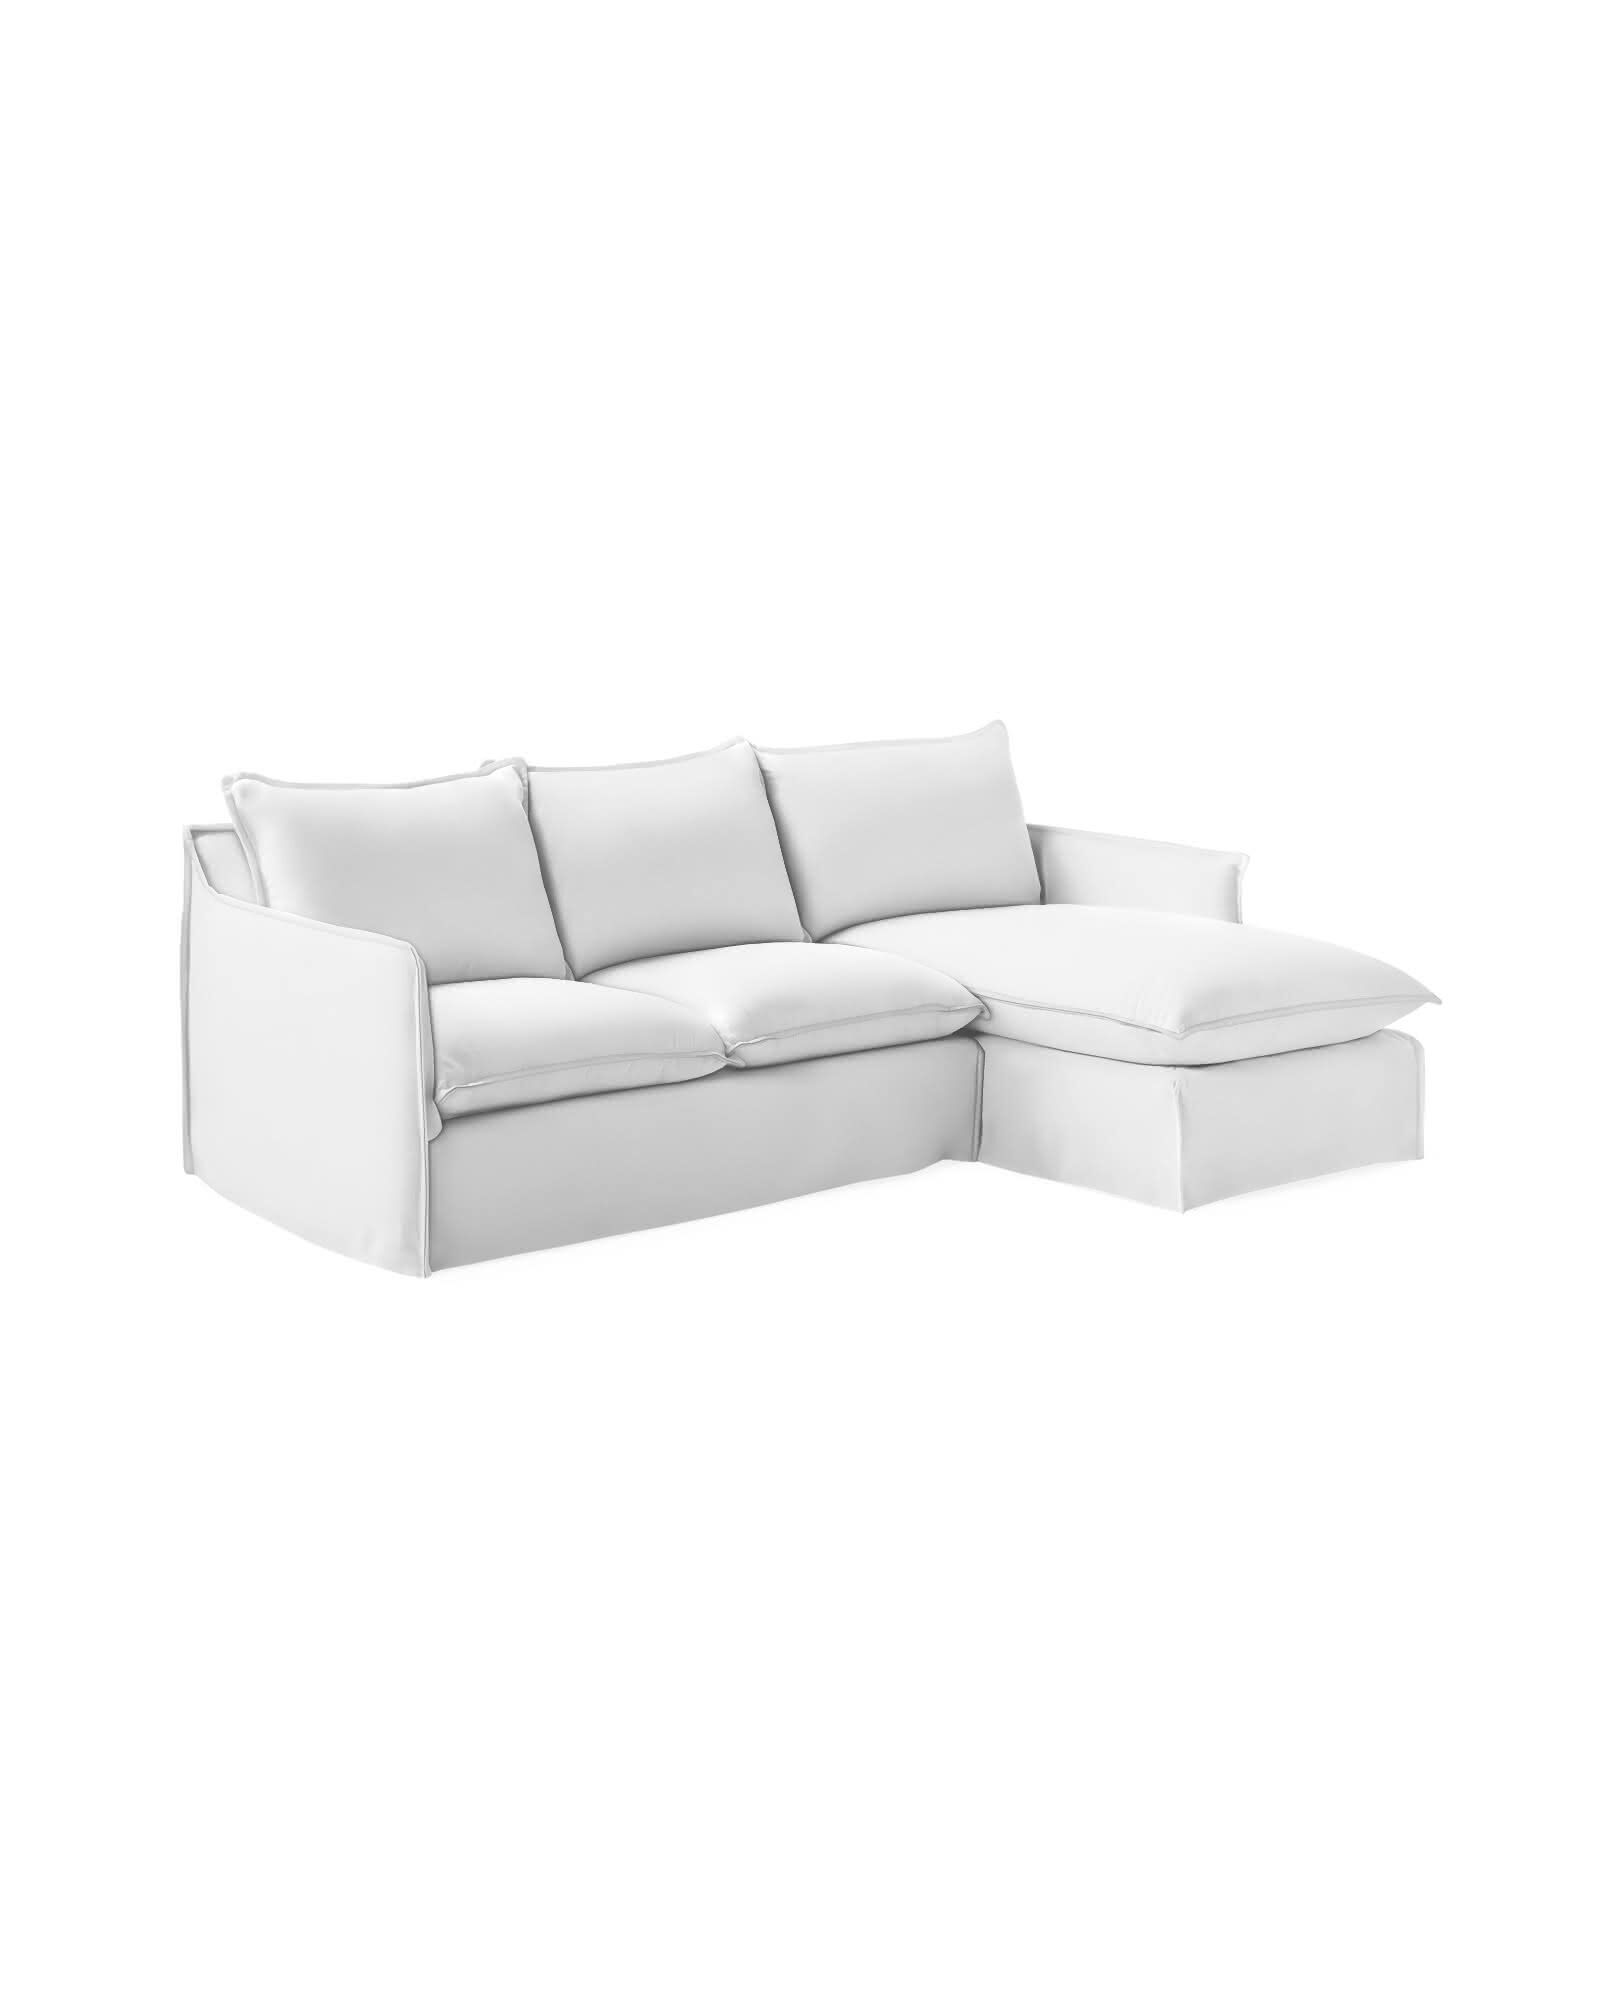 Sundial Outdoor Chaise Sectional - Right-Facing - Perennials® White Basketweave,